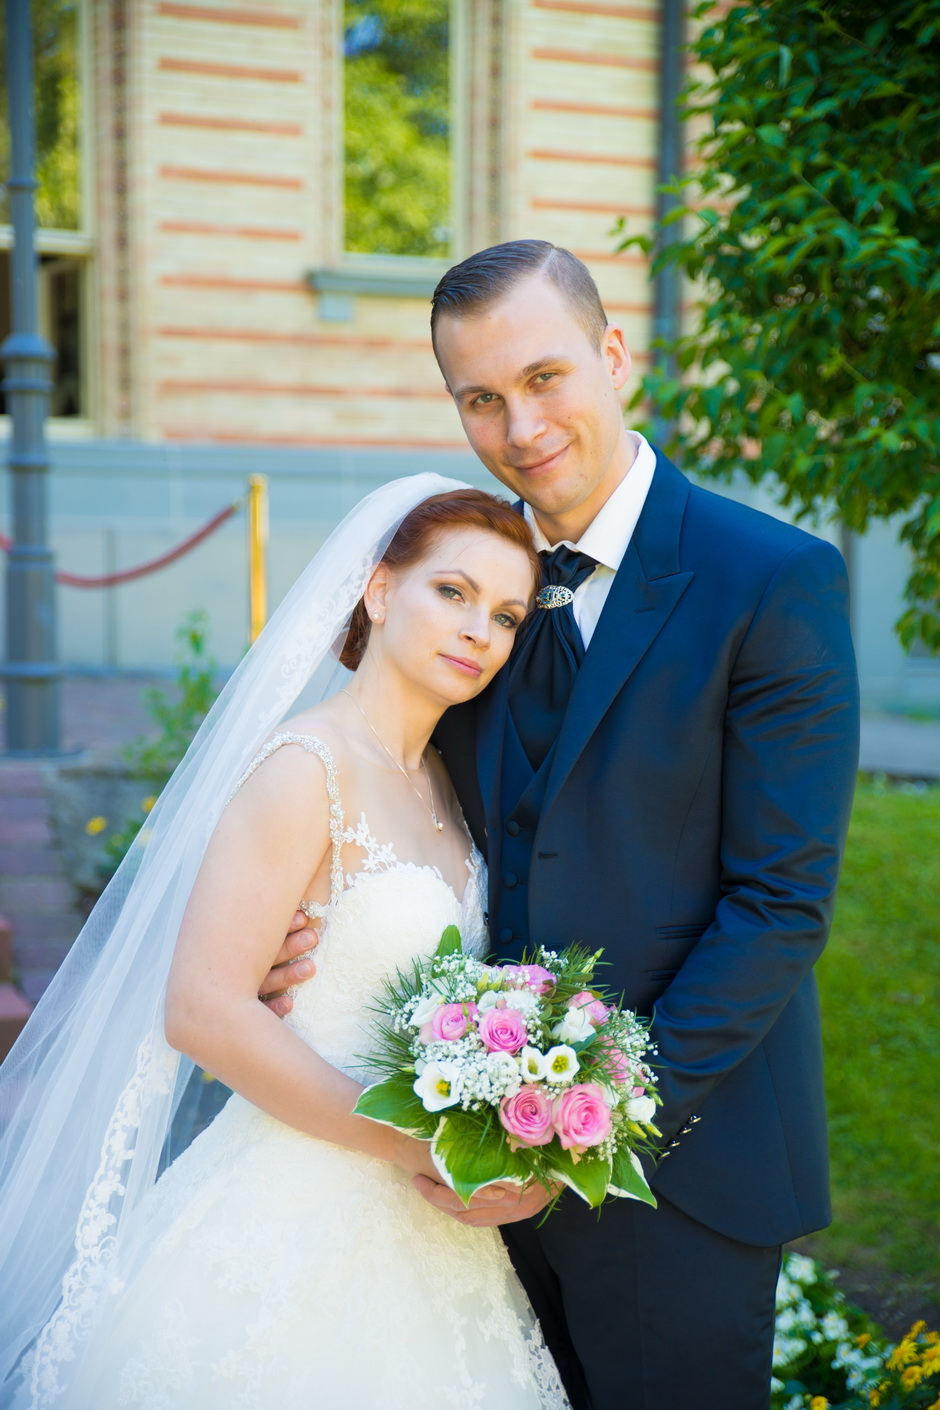 Hochzeitreportage in Bad Aibling